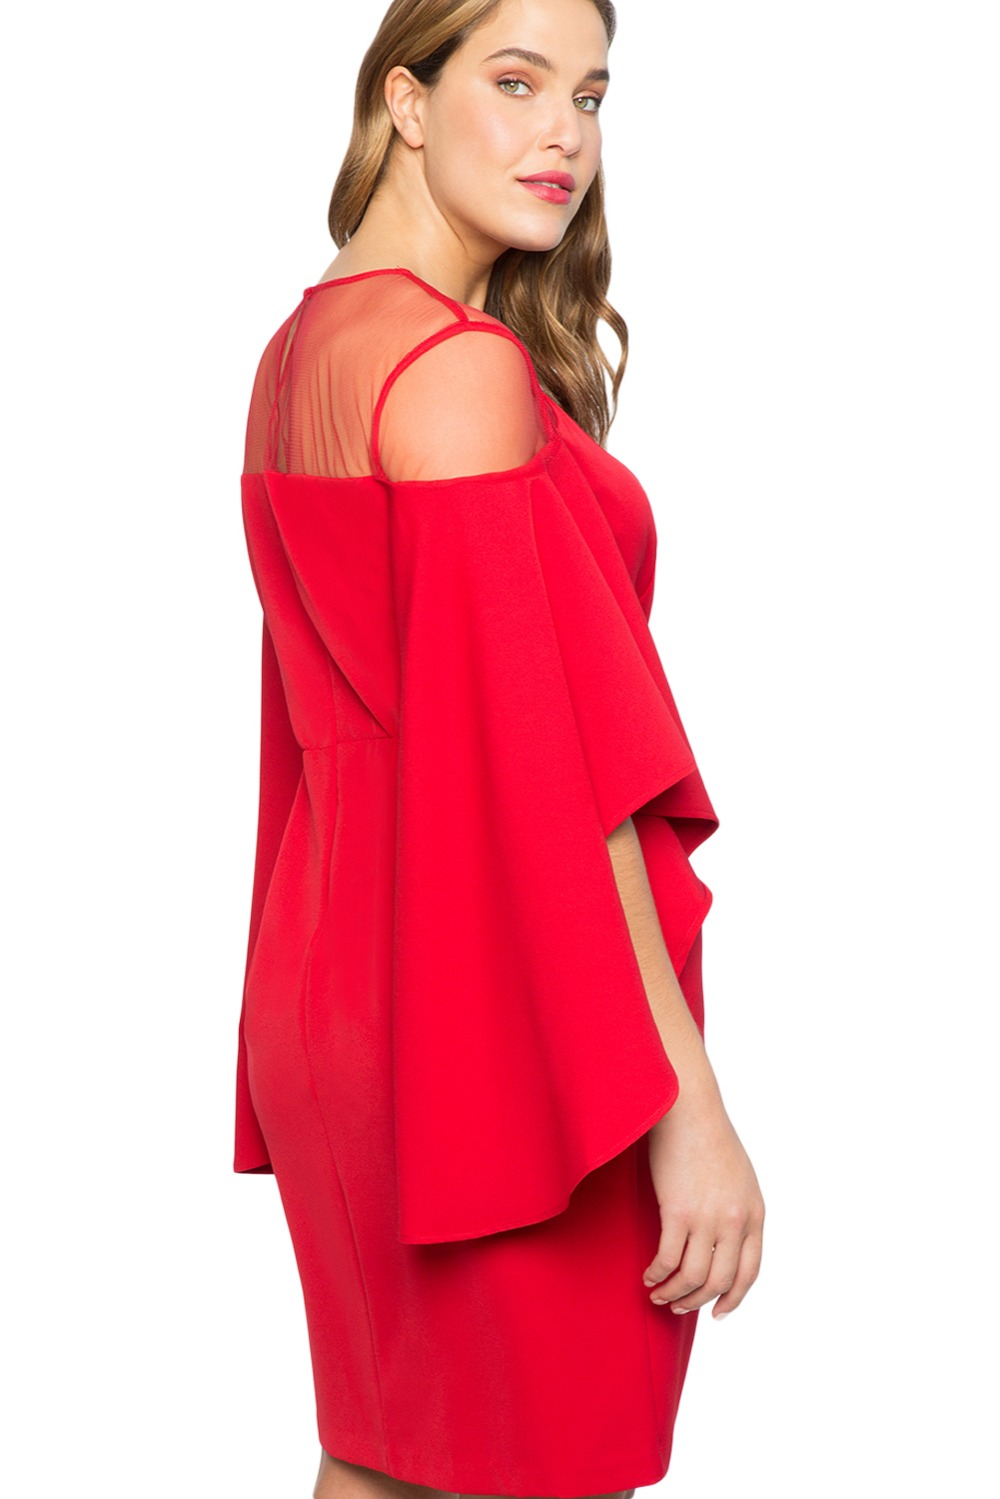 Red-Mesh-Illusion-Cold-Shoulder-Plus-Size-Dress-LC220395-3-3